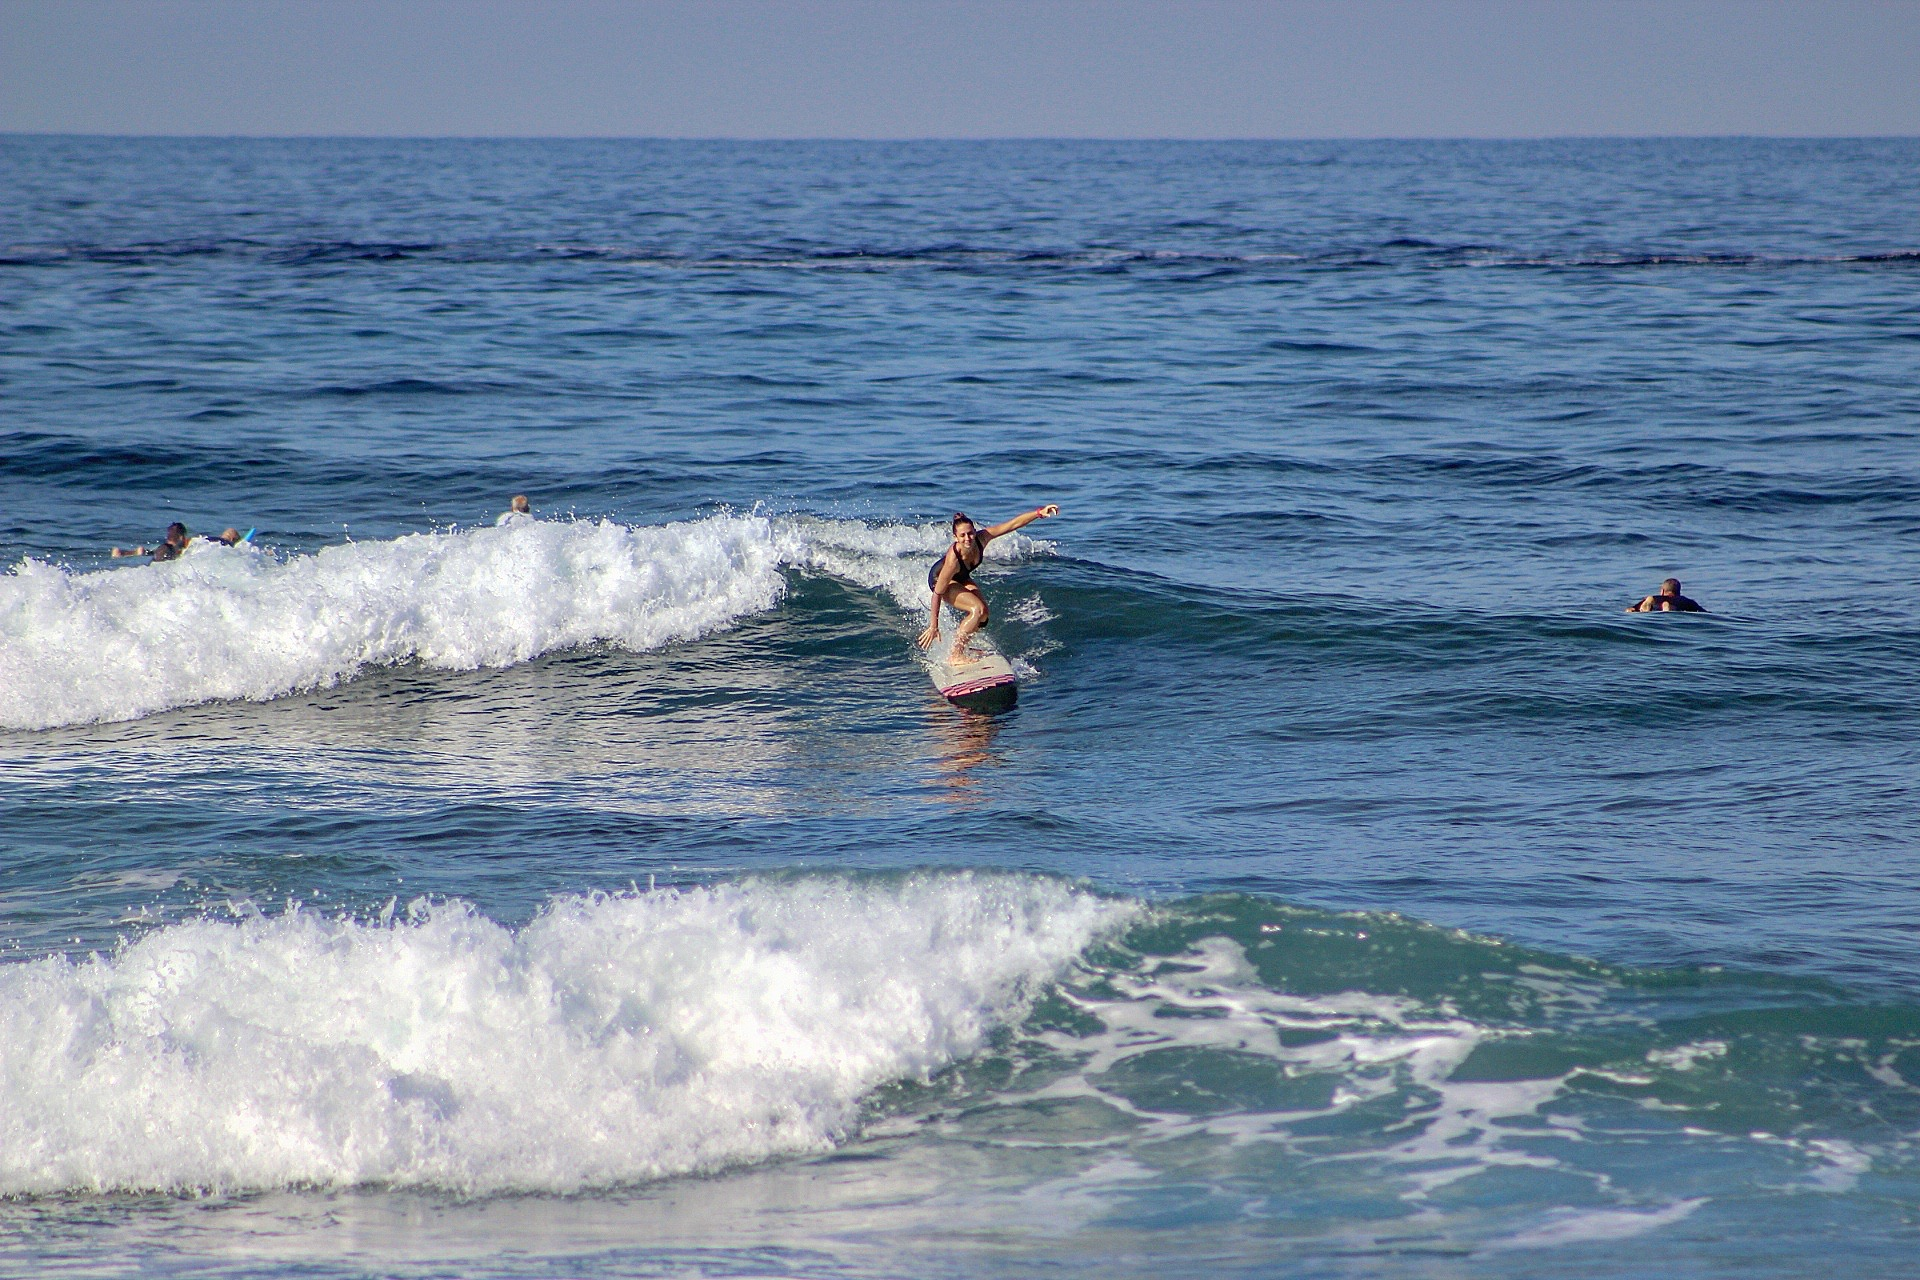 10 Things to do in Tenerife - Surfing